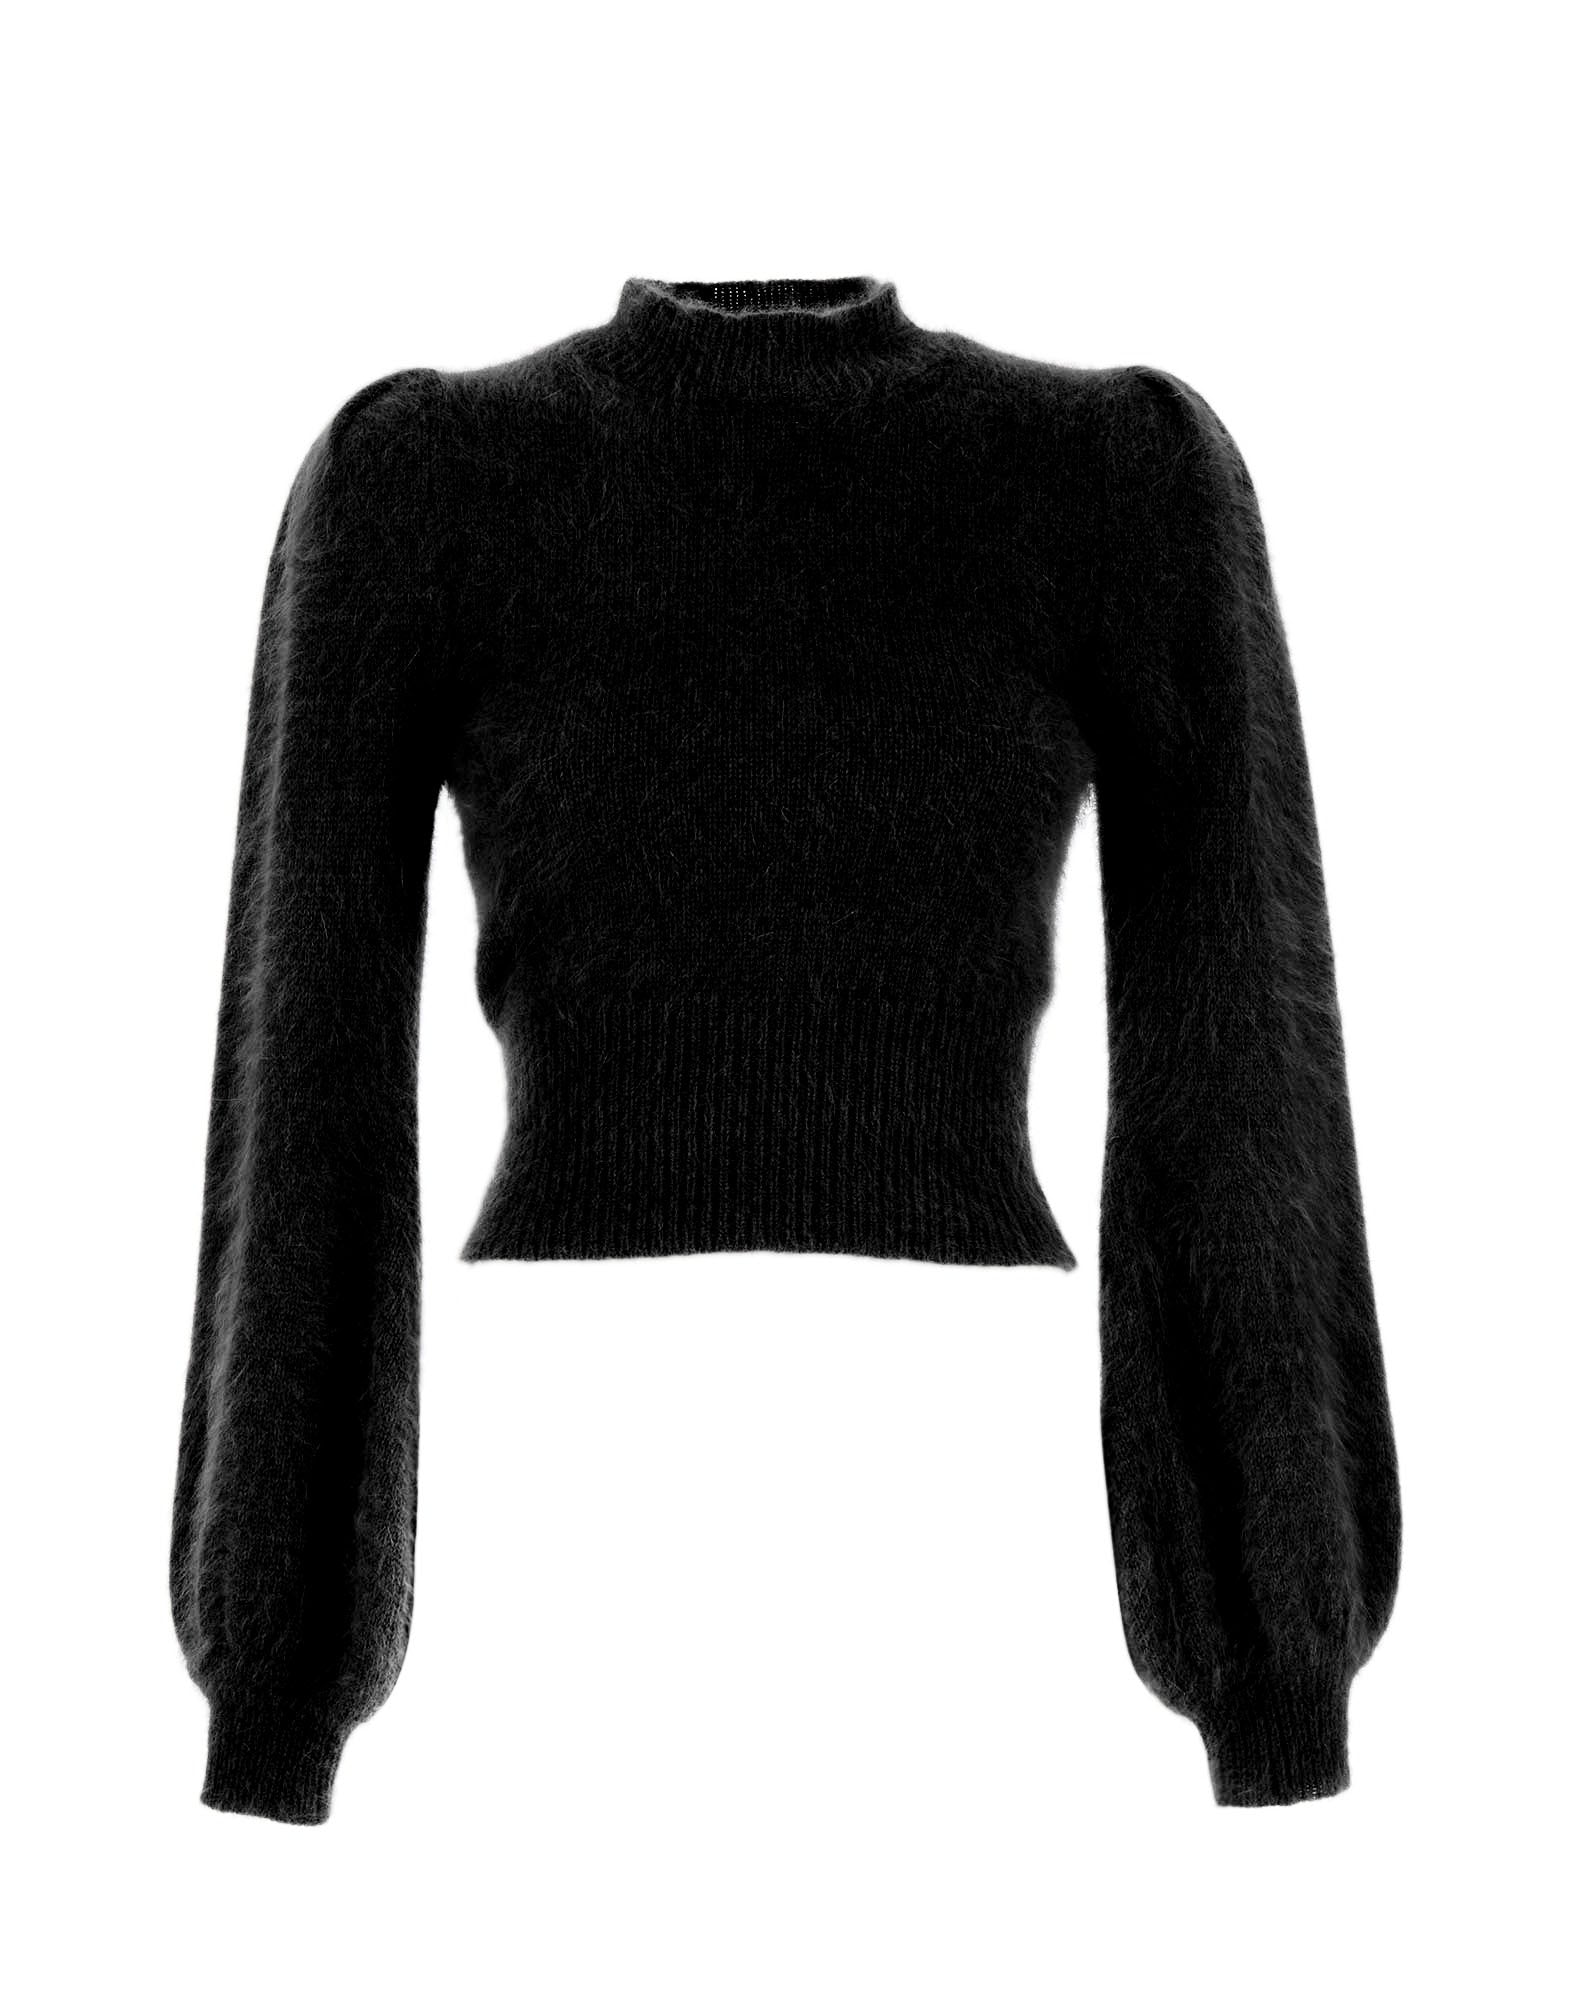 Black turtleneck angora knit